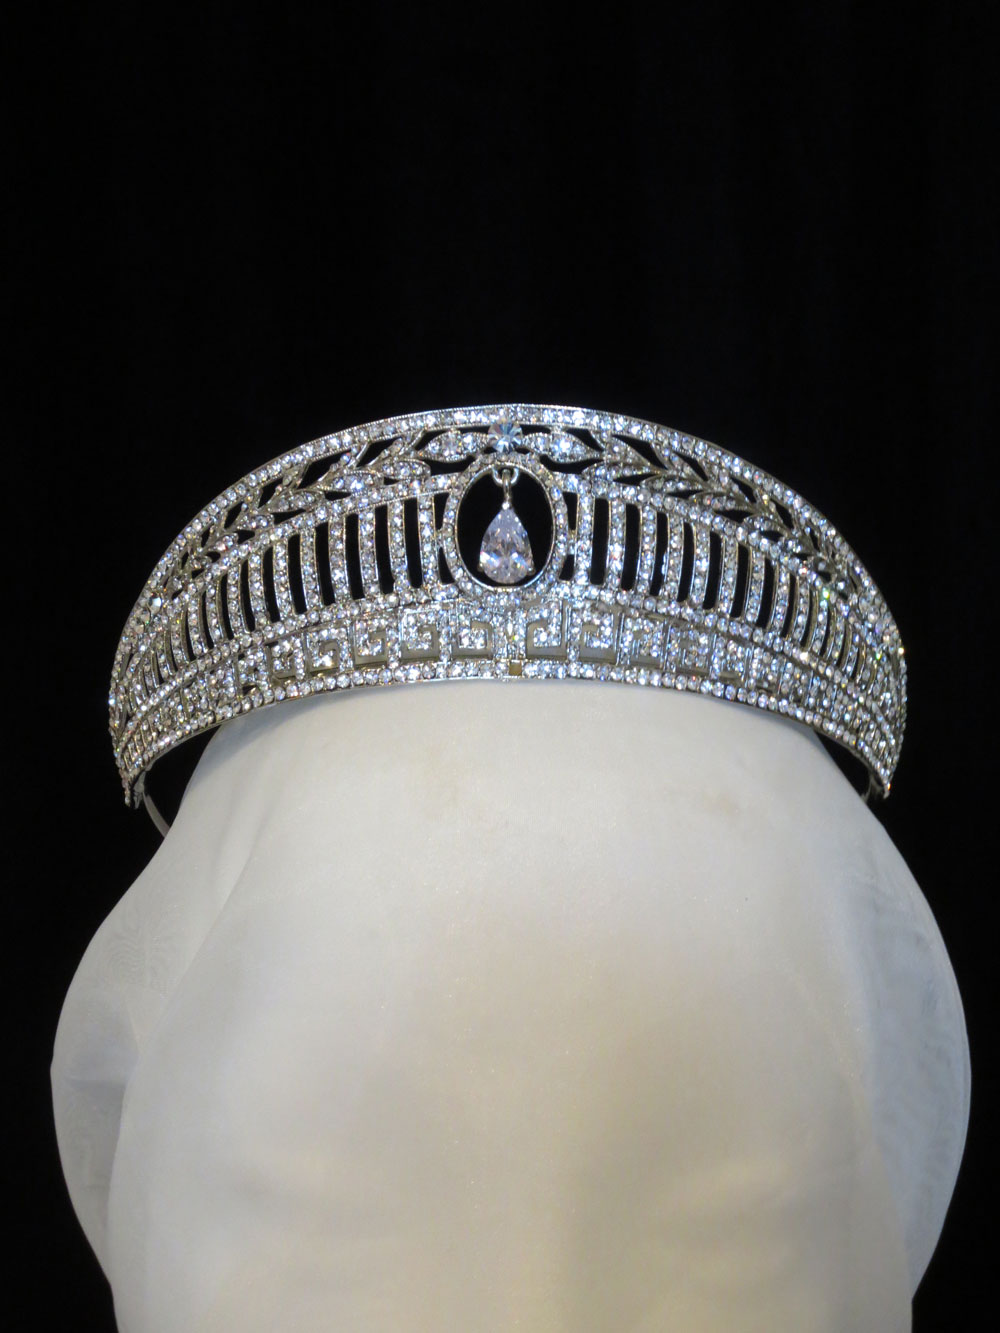 John-Zimmerman-Couture-Headpieces-and-Tiaras-Model-Shell-Gallery-Image-1